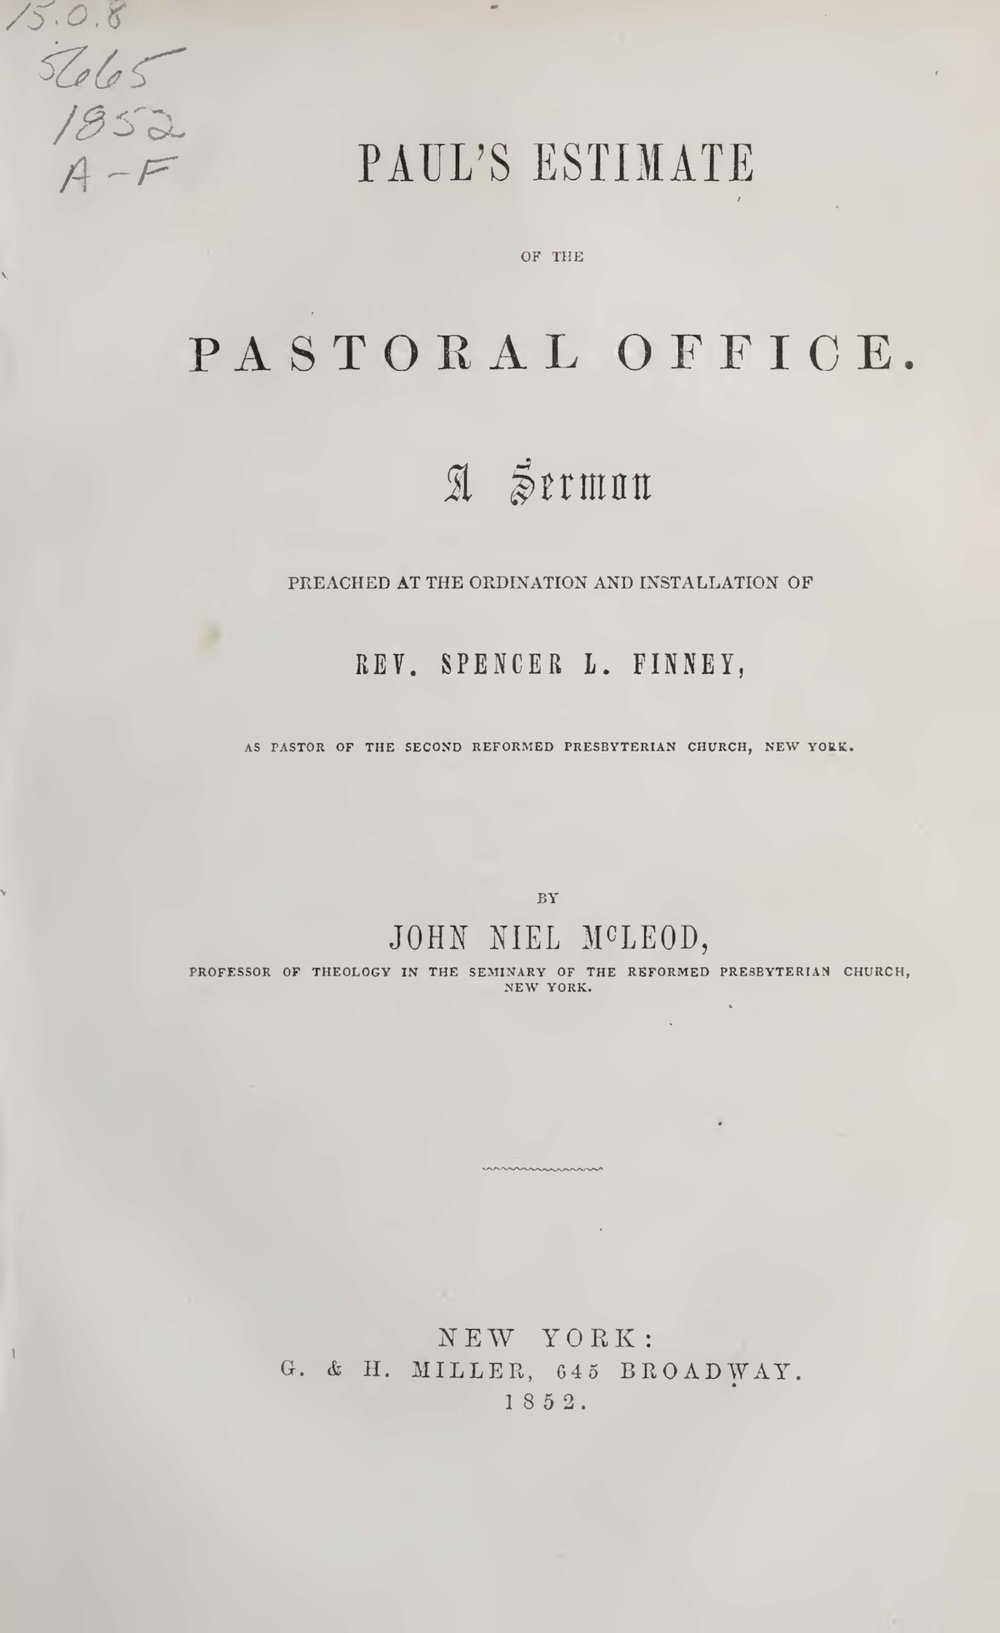 McLeod, John Niel, Paul's Estimate of the Pastoral Office Title Page.jpg